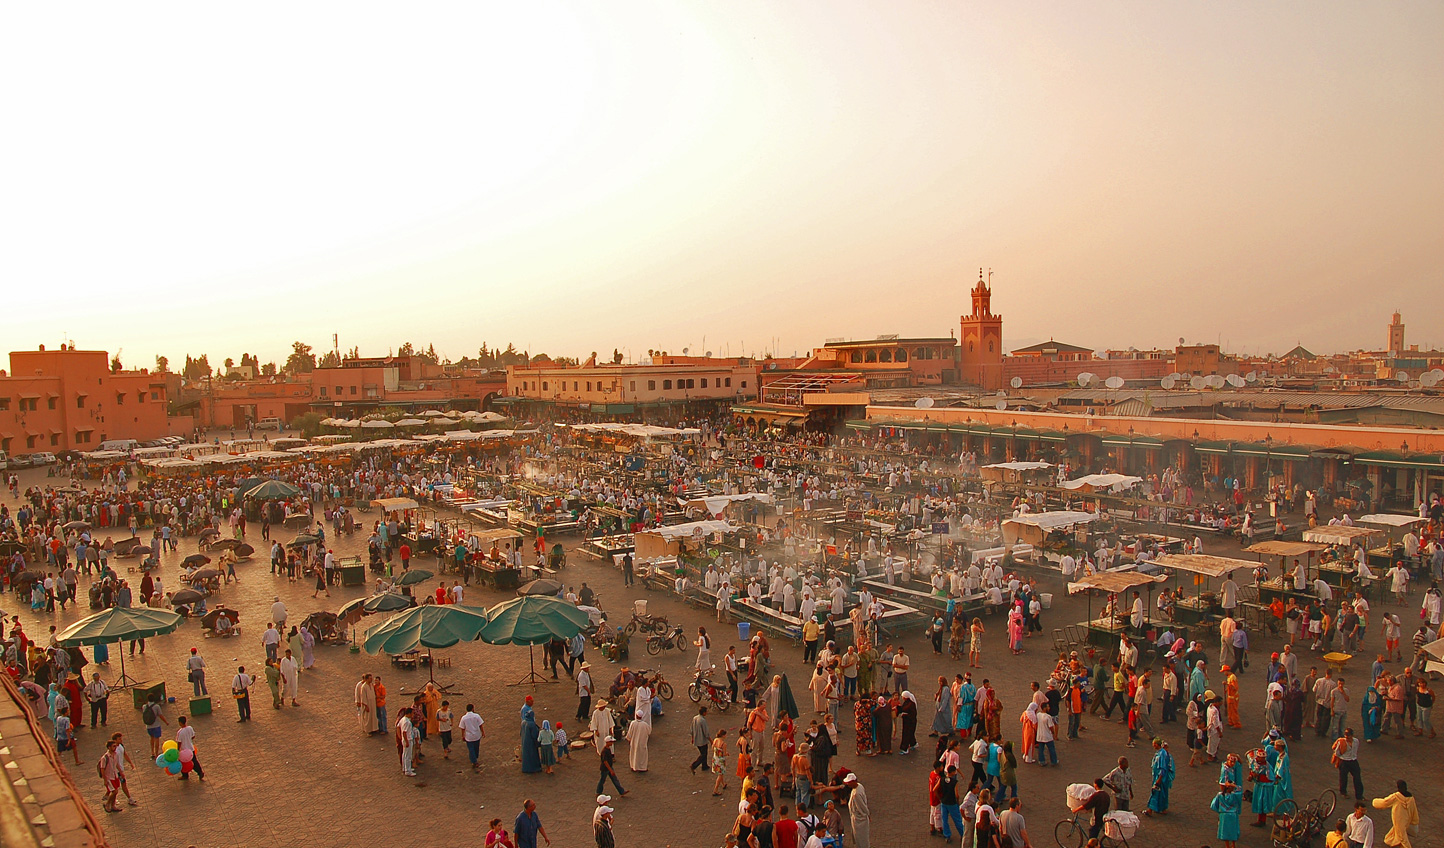 Come evening. head to Jemaa el Fna for an overload of sights. scents and sounds